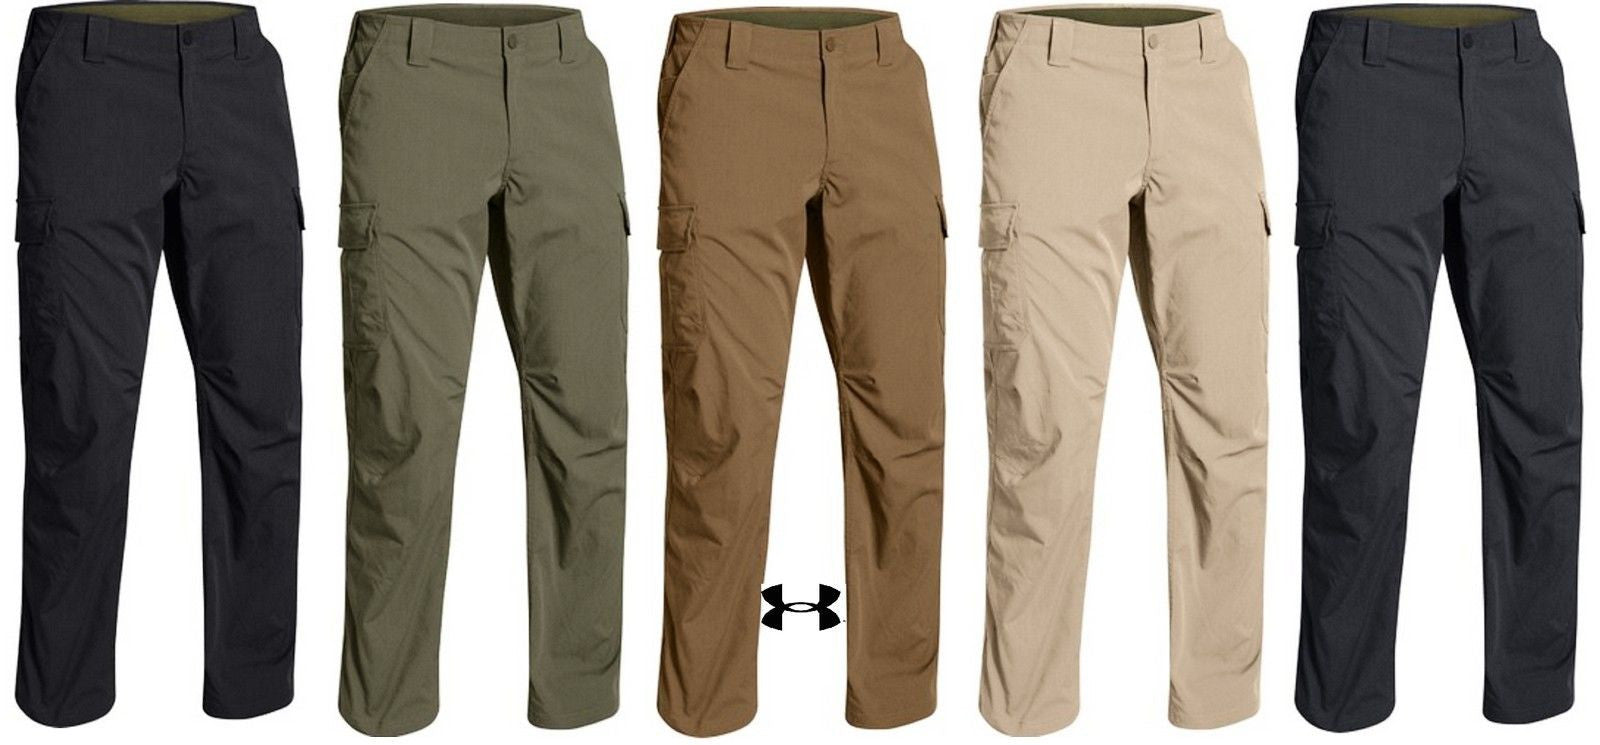 bf669b1442da8b Under Armour Tactical Patrol Pants II - Conceal Carry Field Duty Cargo Pants  ...